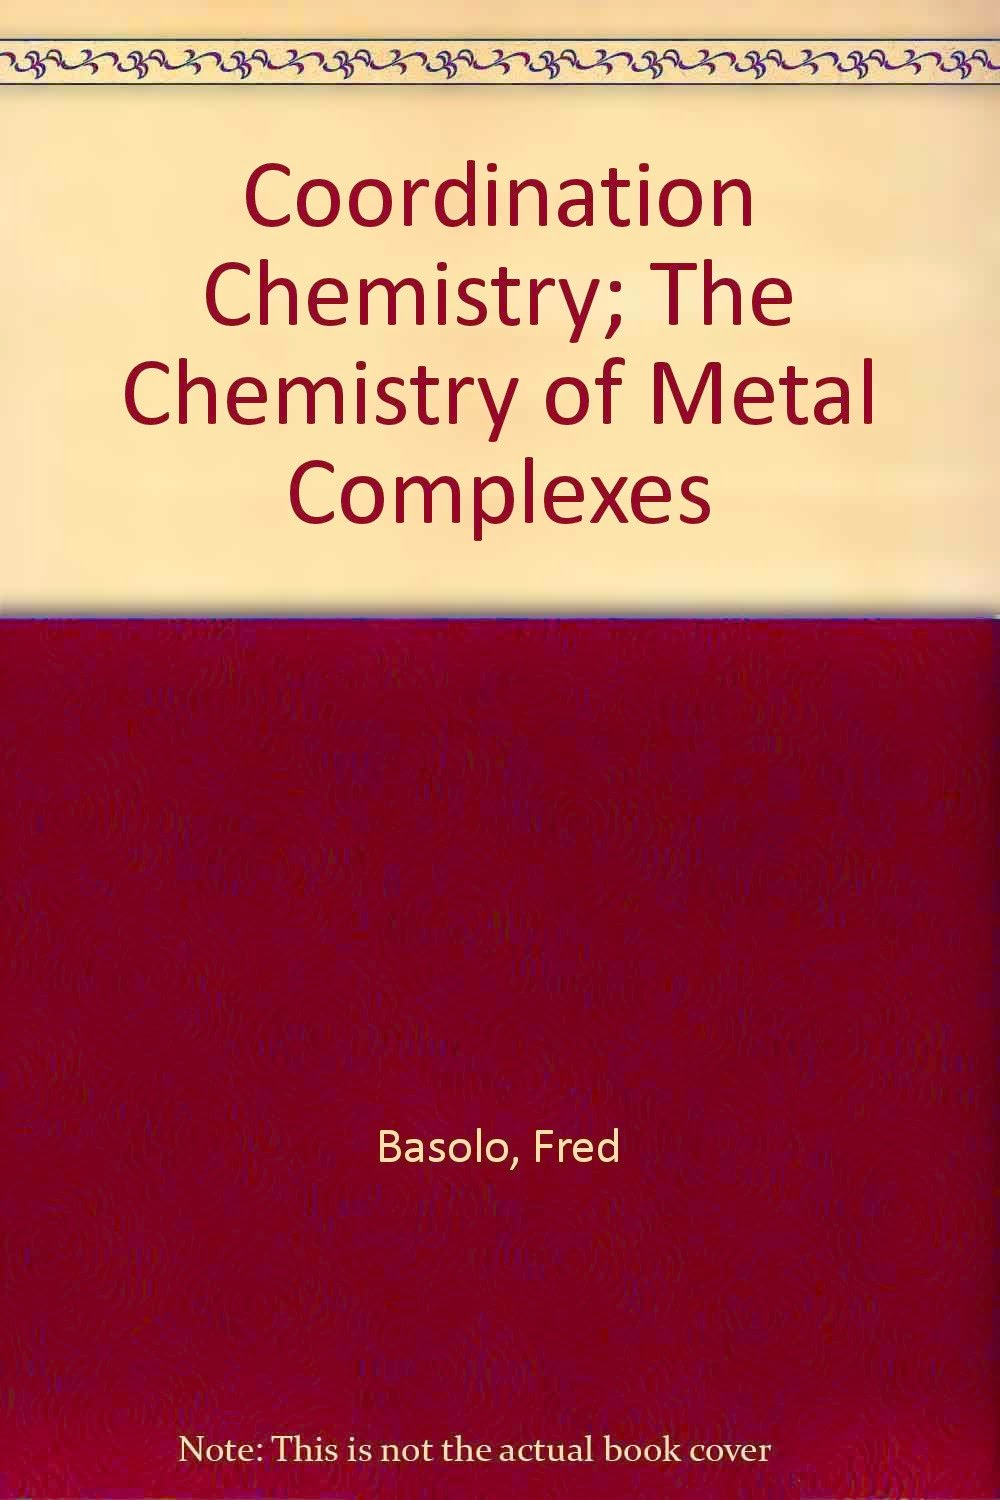 Ebook coordination chemistry 1986 by fred basolo ronald c johnson link download ebook coordination chemistry 1986 by fred basolo ronald c johnson fandeluxe Images